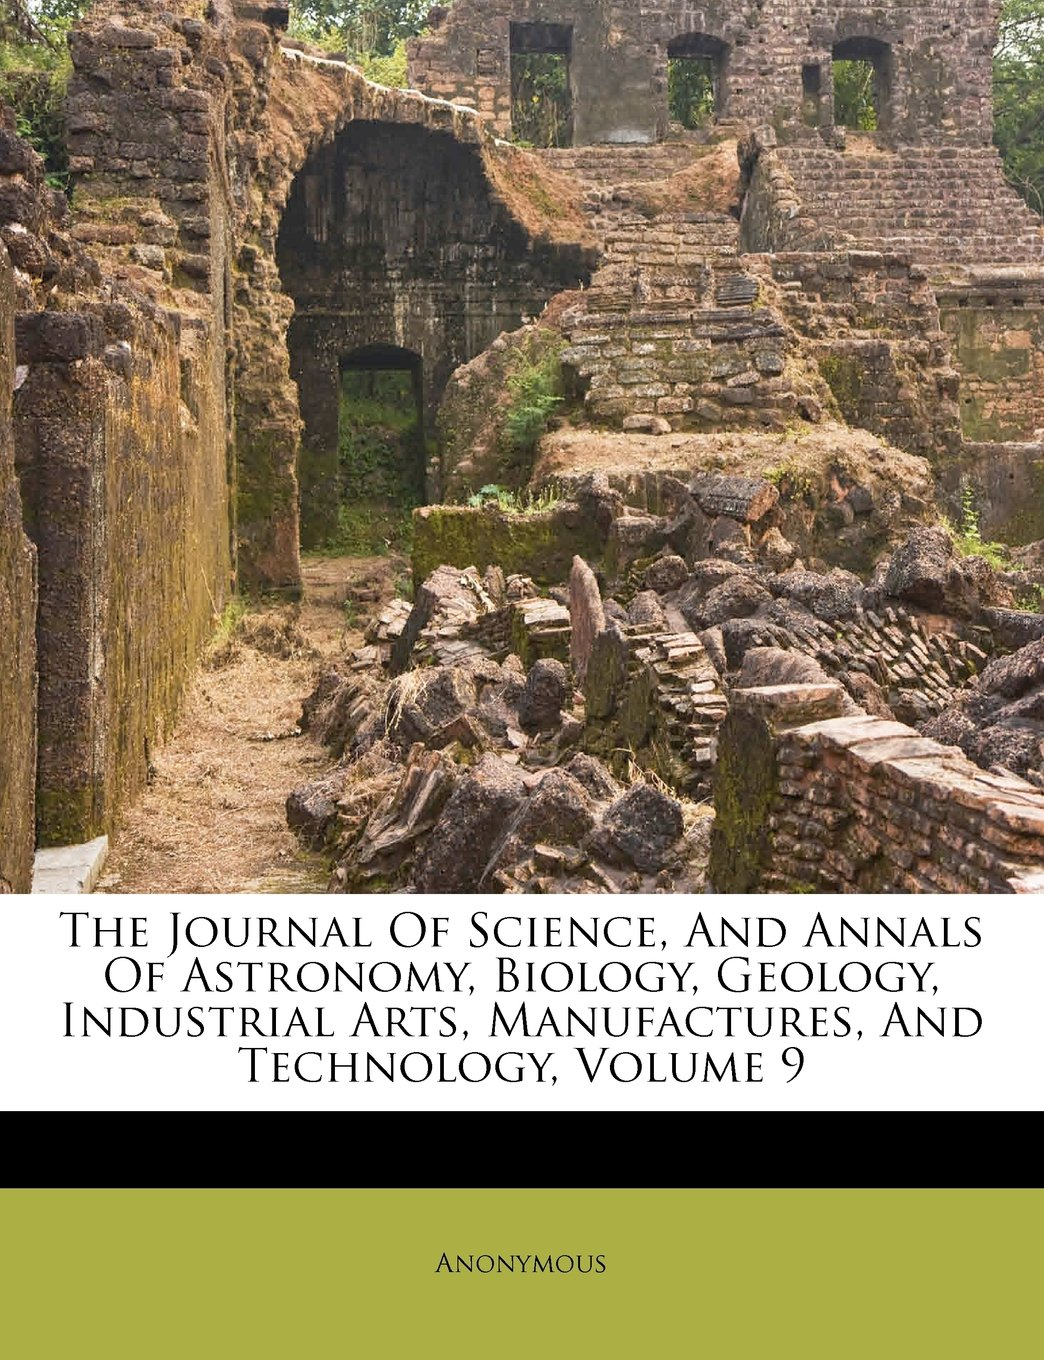 Download The Journal Of Science, And Annals Of Astronomy, Biology, Geology, Industrial Arts, Manufactures, And Technology, Volume 9 PDF